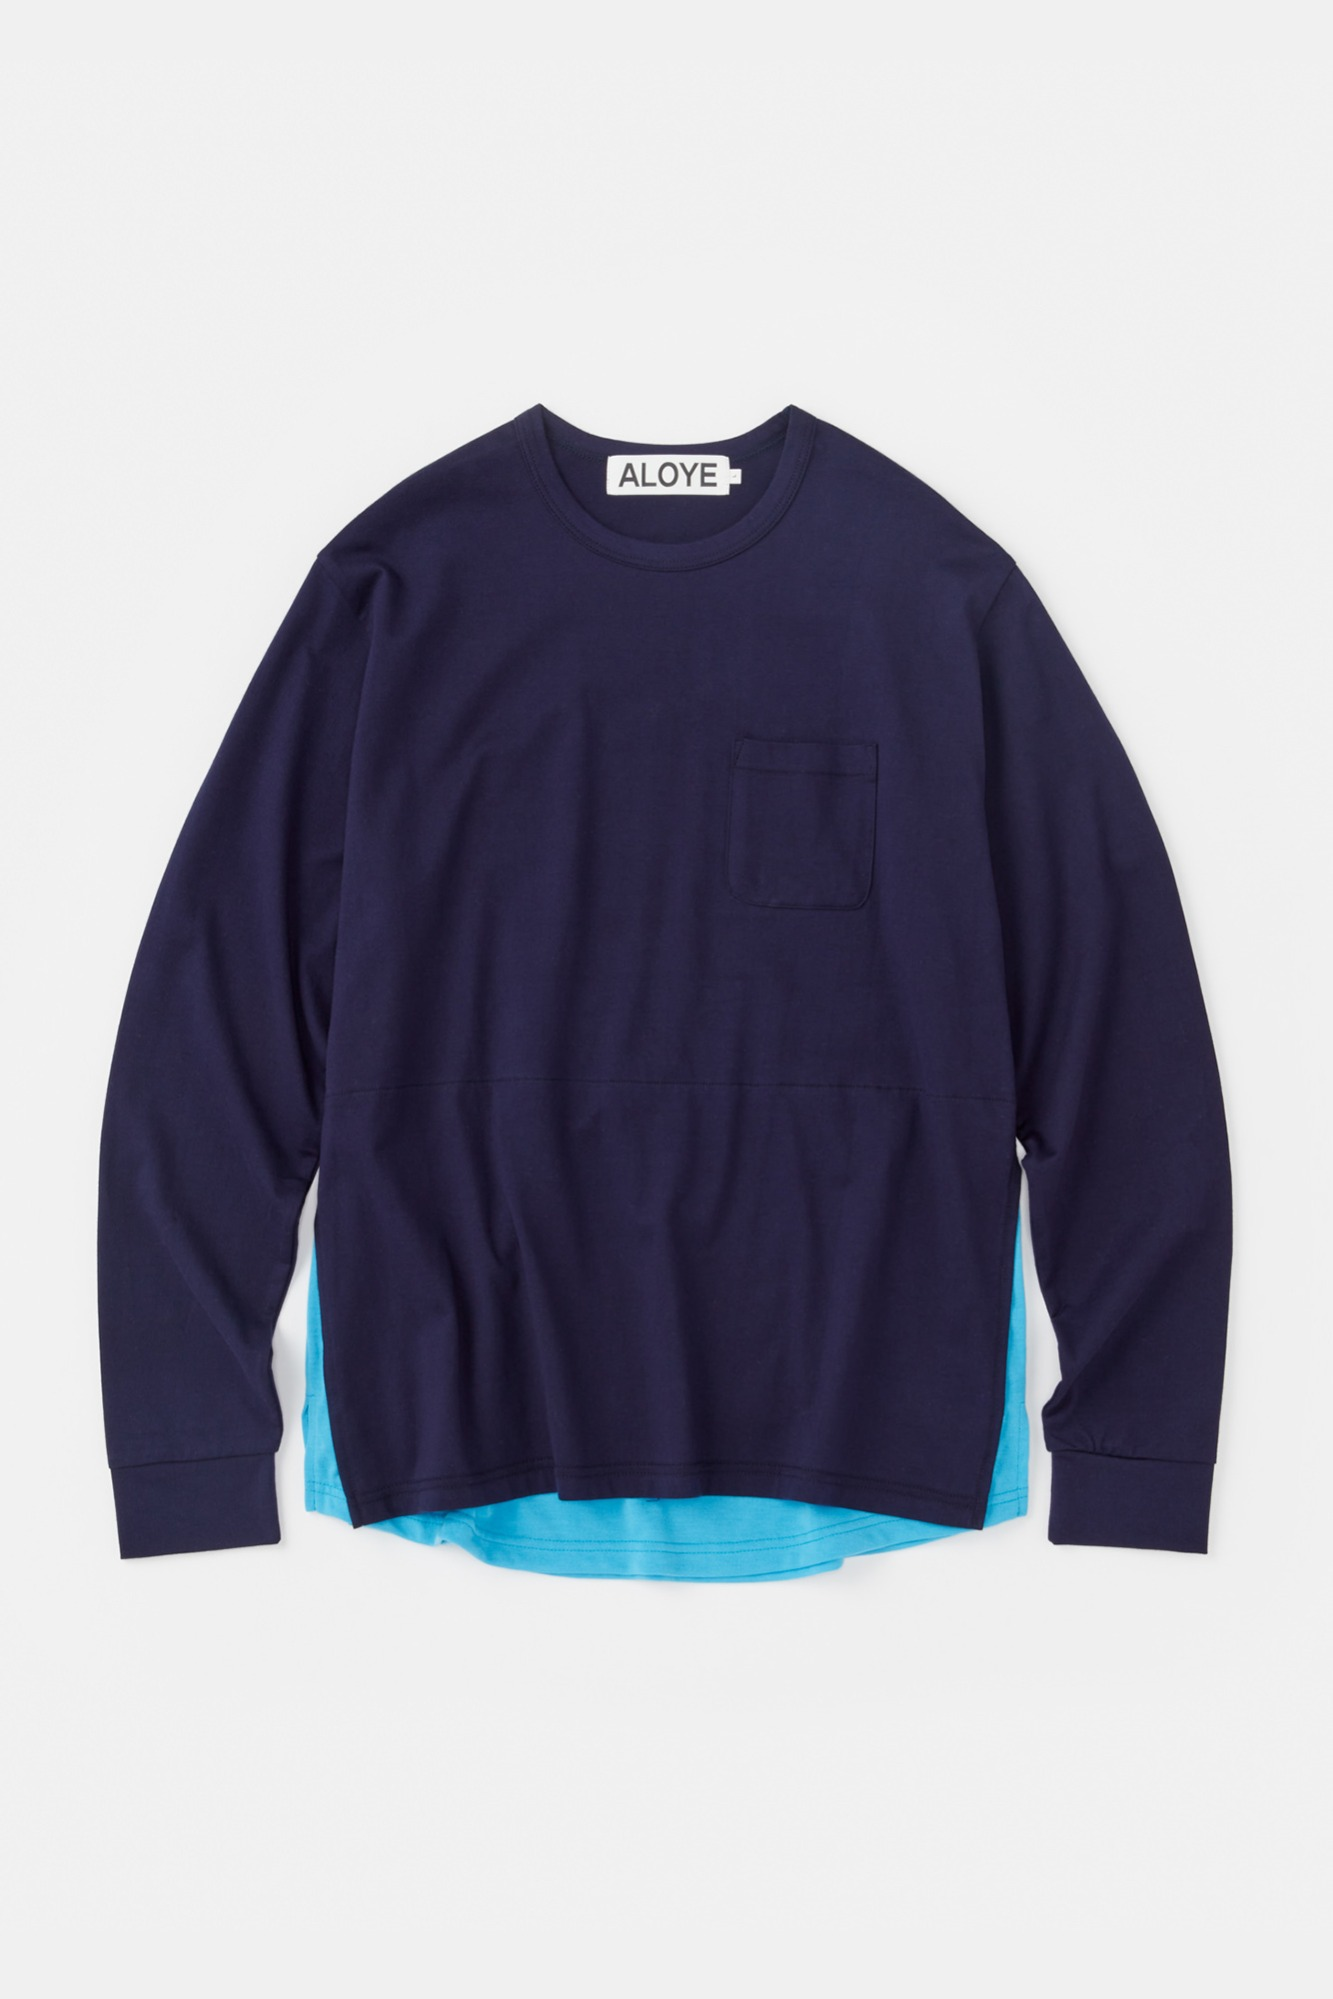 "ALOYE Shirt Fabrics Long Sleeve Layerd T-shirt ""Navy"""